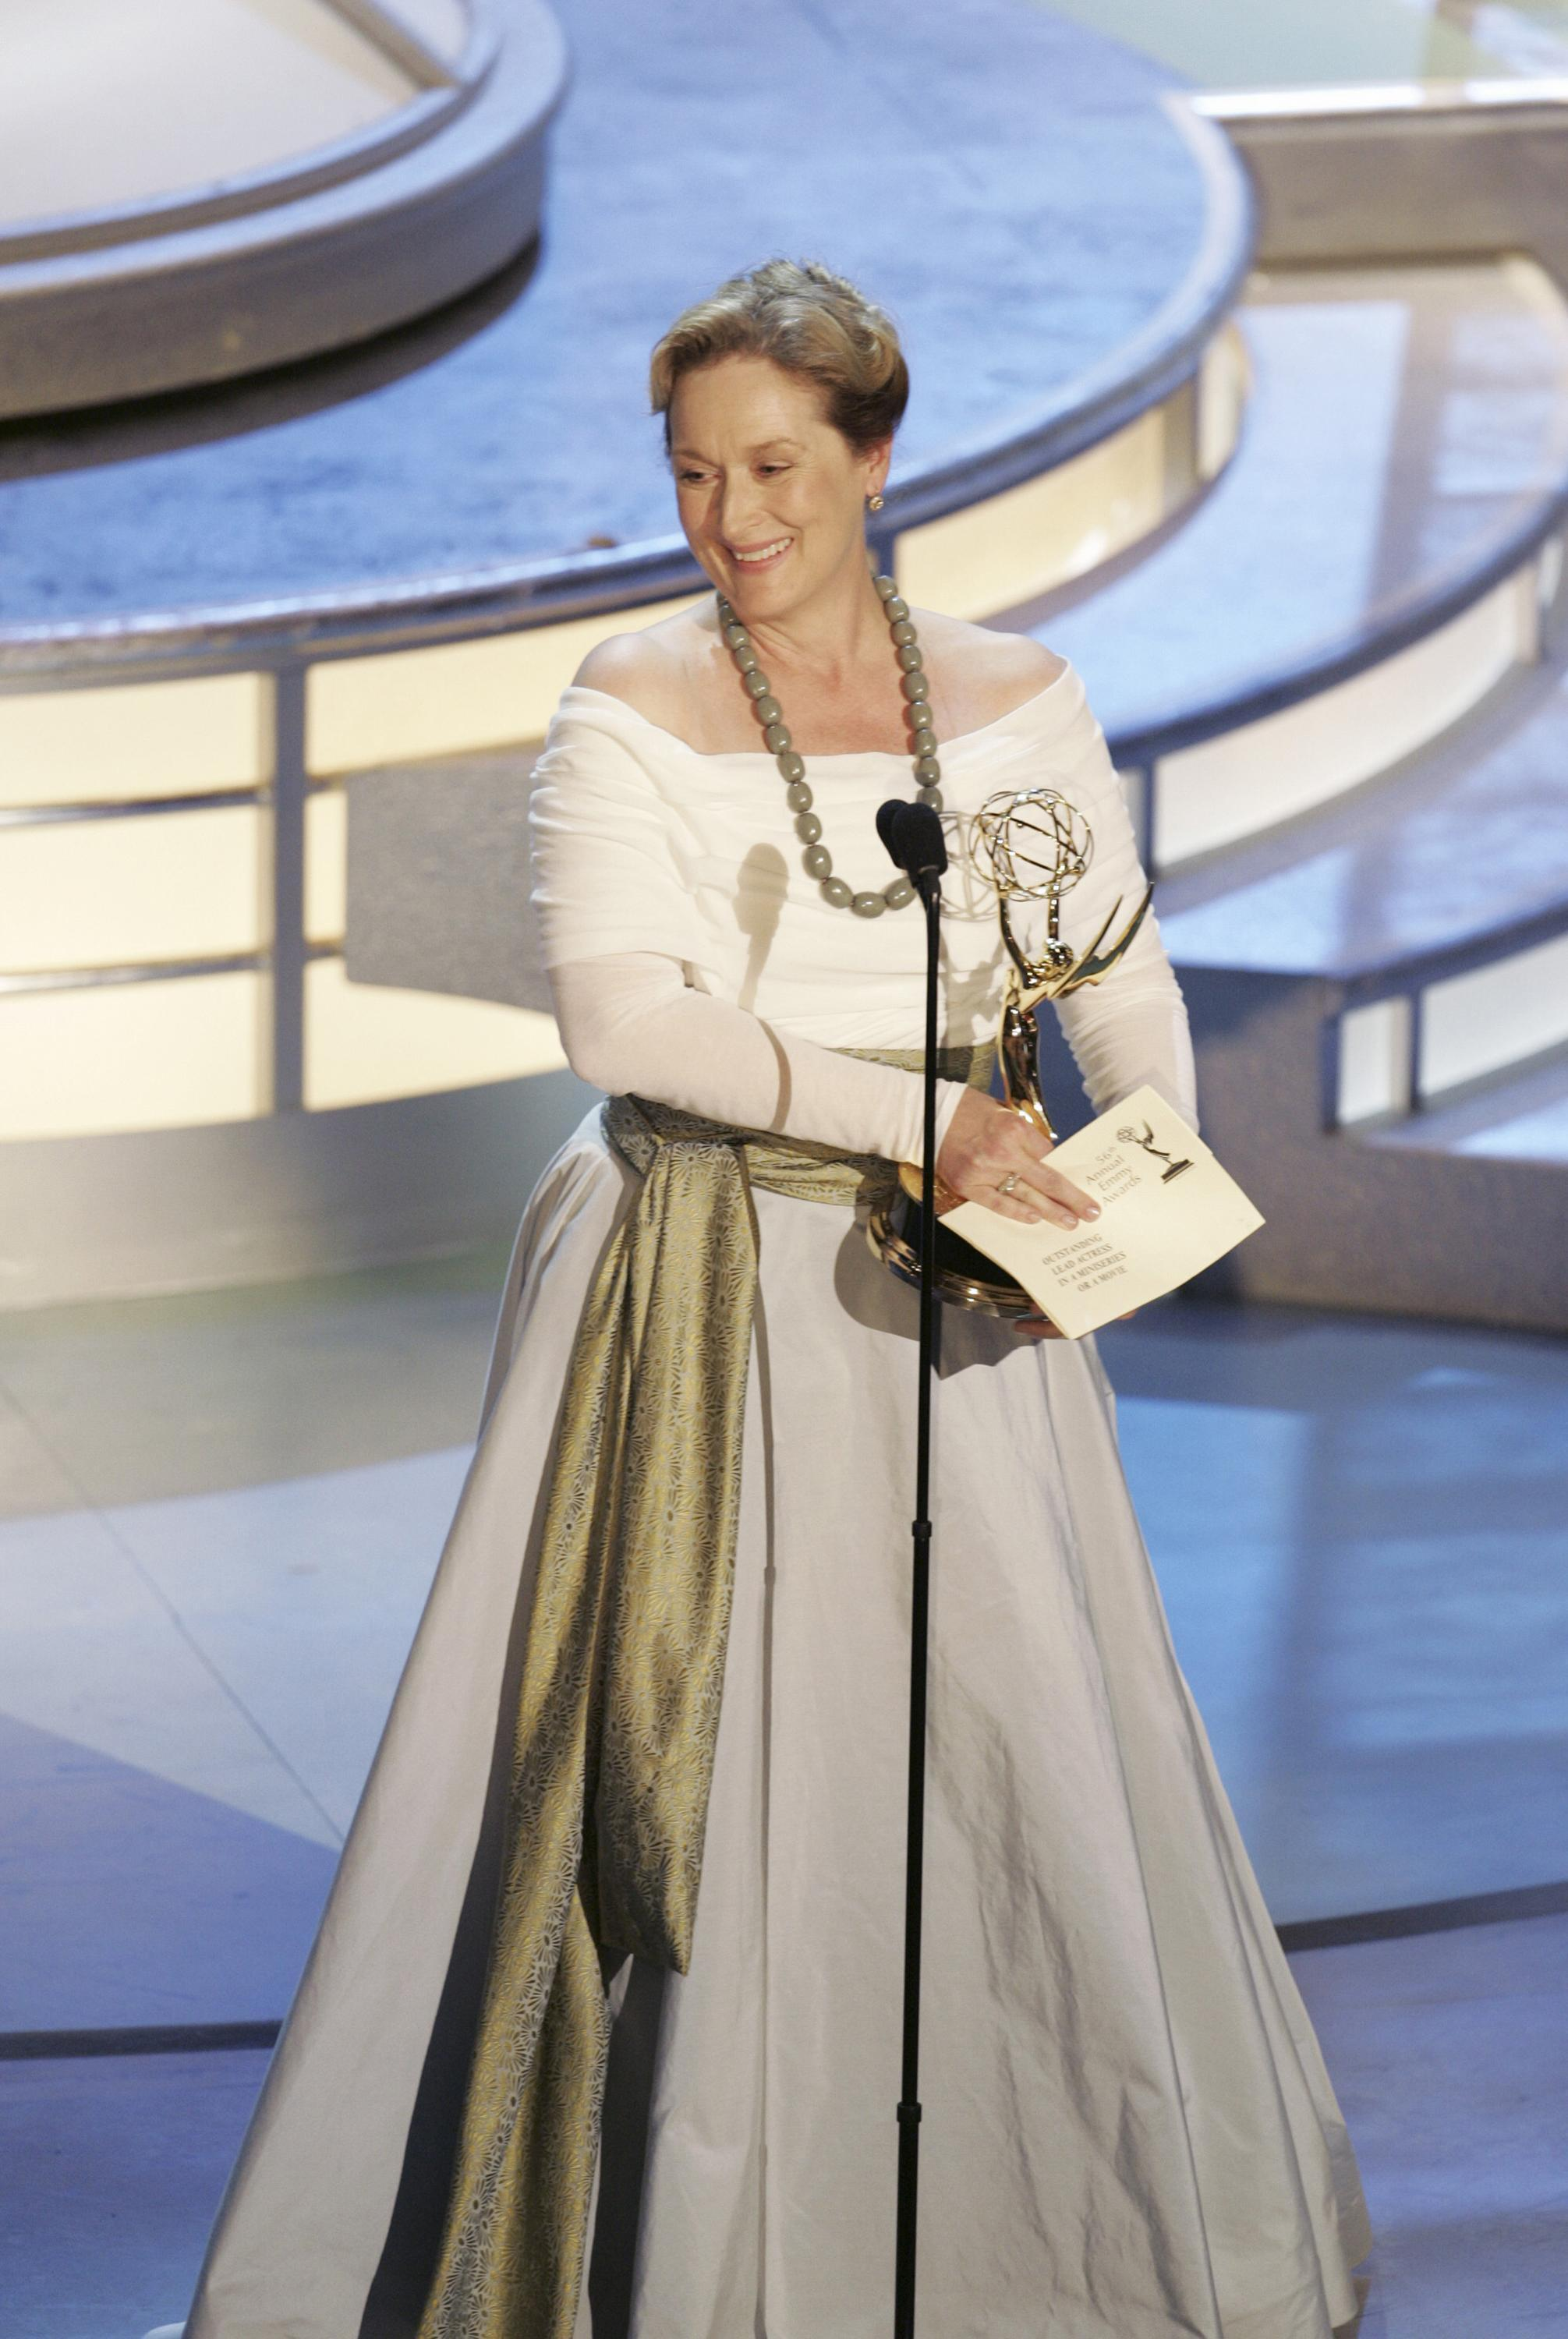 Meryl Streep gives her acceptance speech at the 56th annual Primetime Emmy Awards on Sept. 19, 2004.